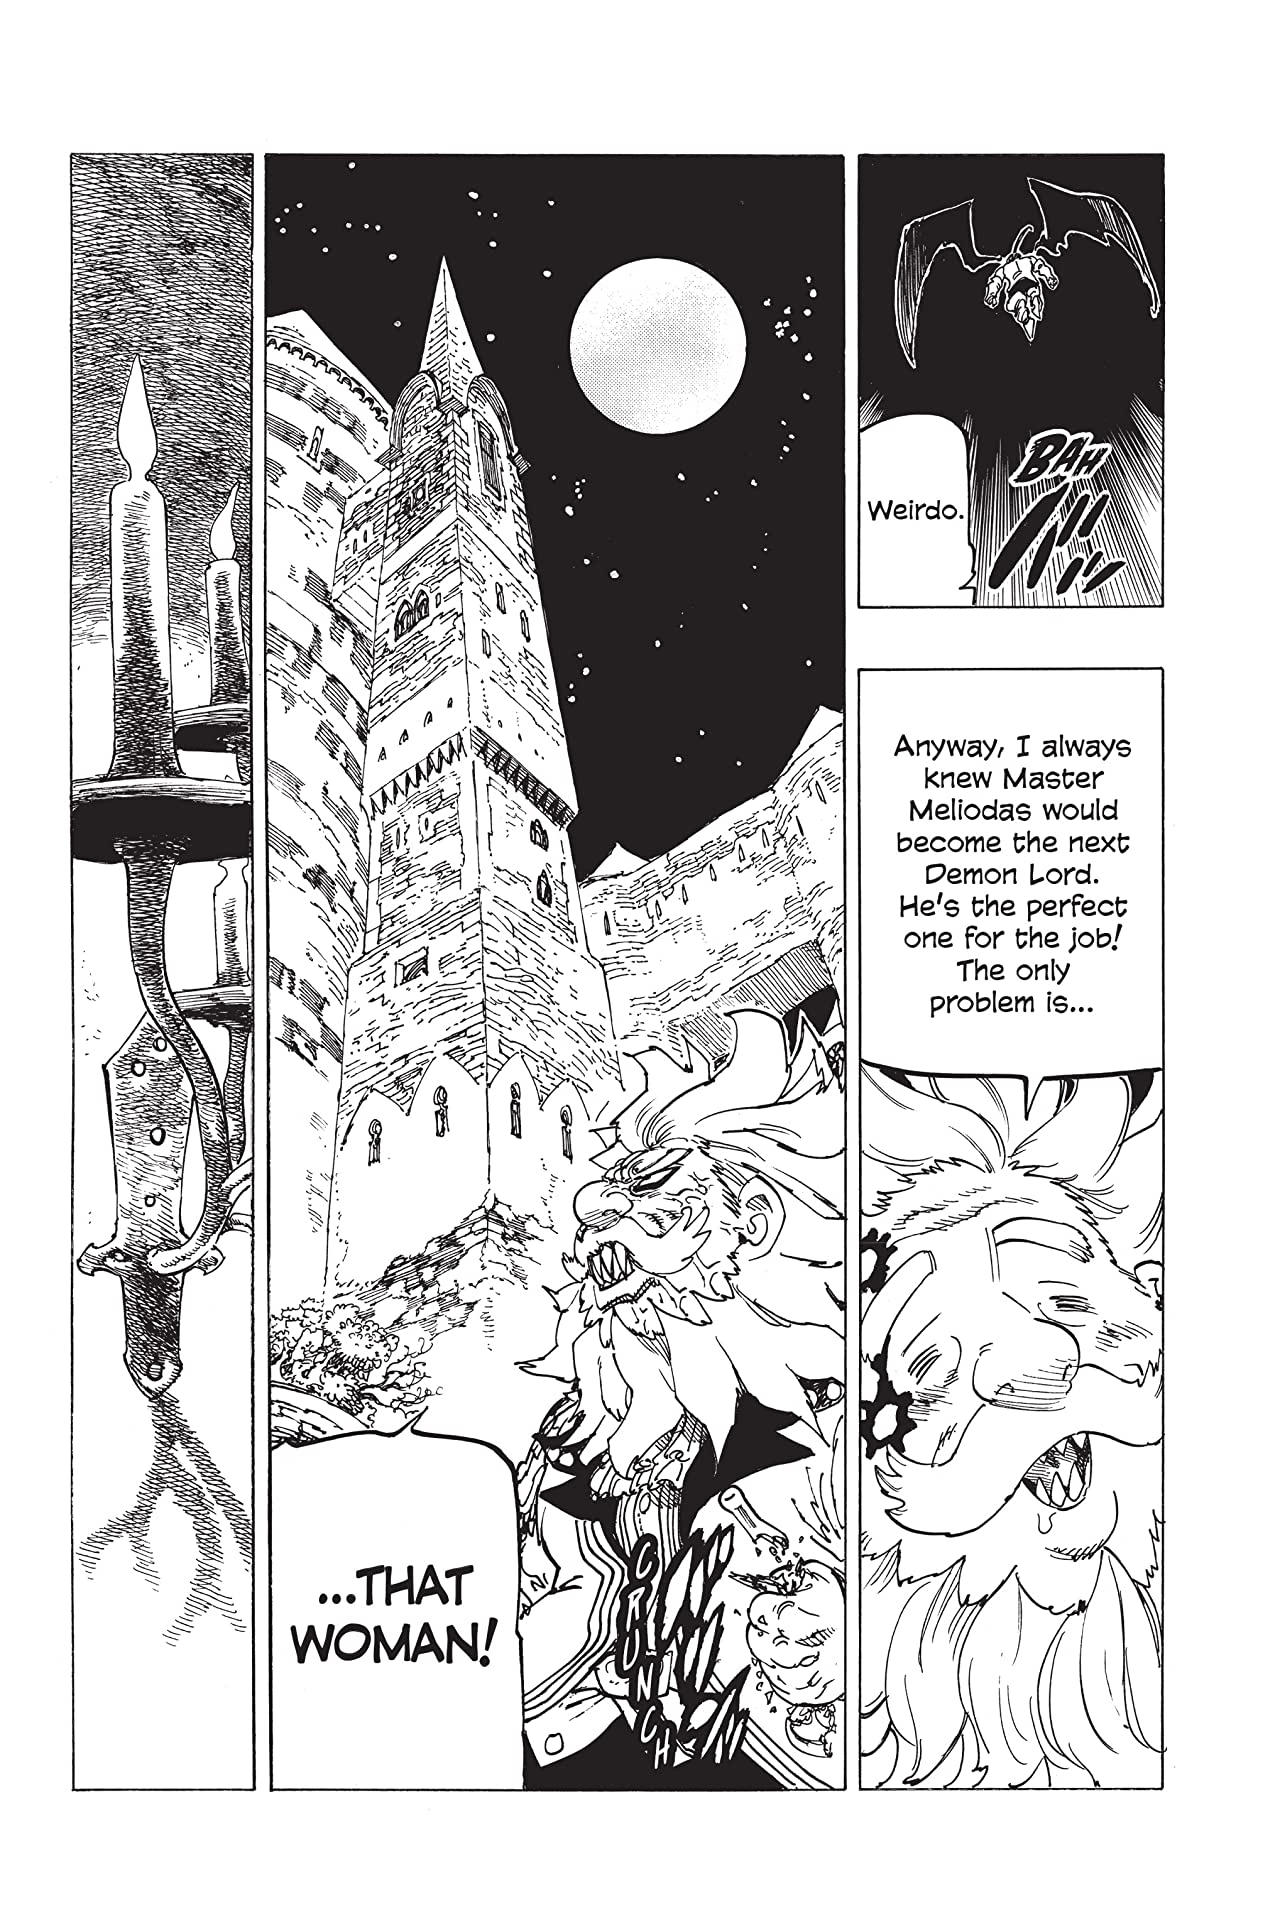 The Seven Deadly Sins #248